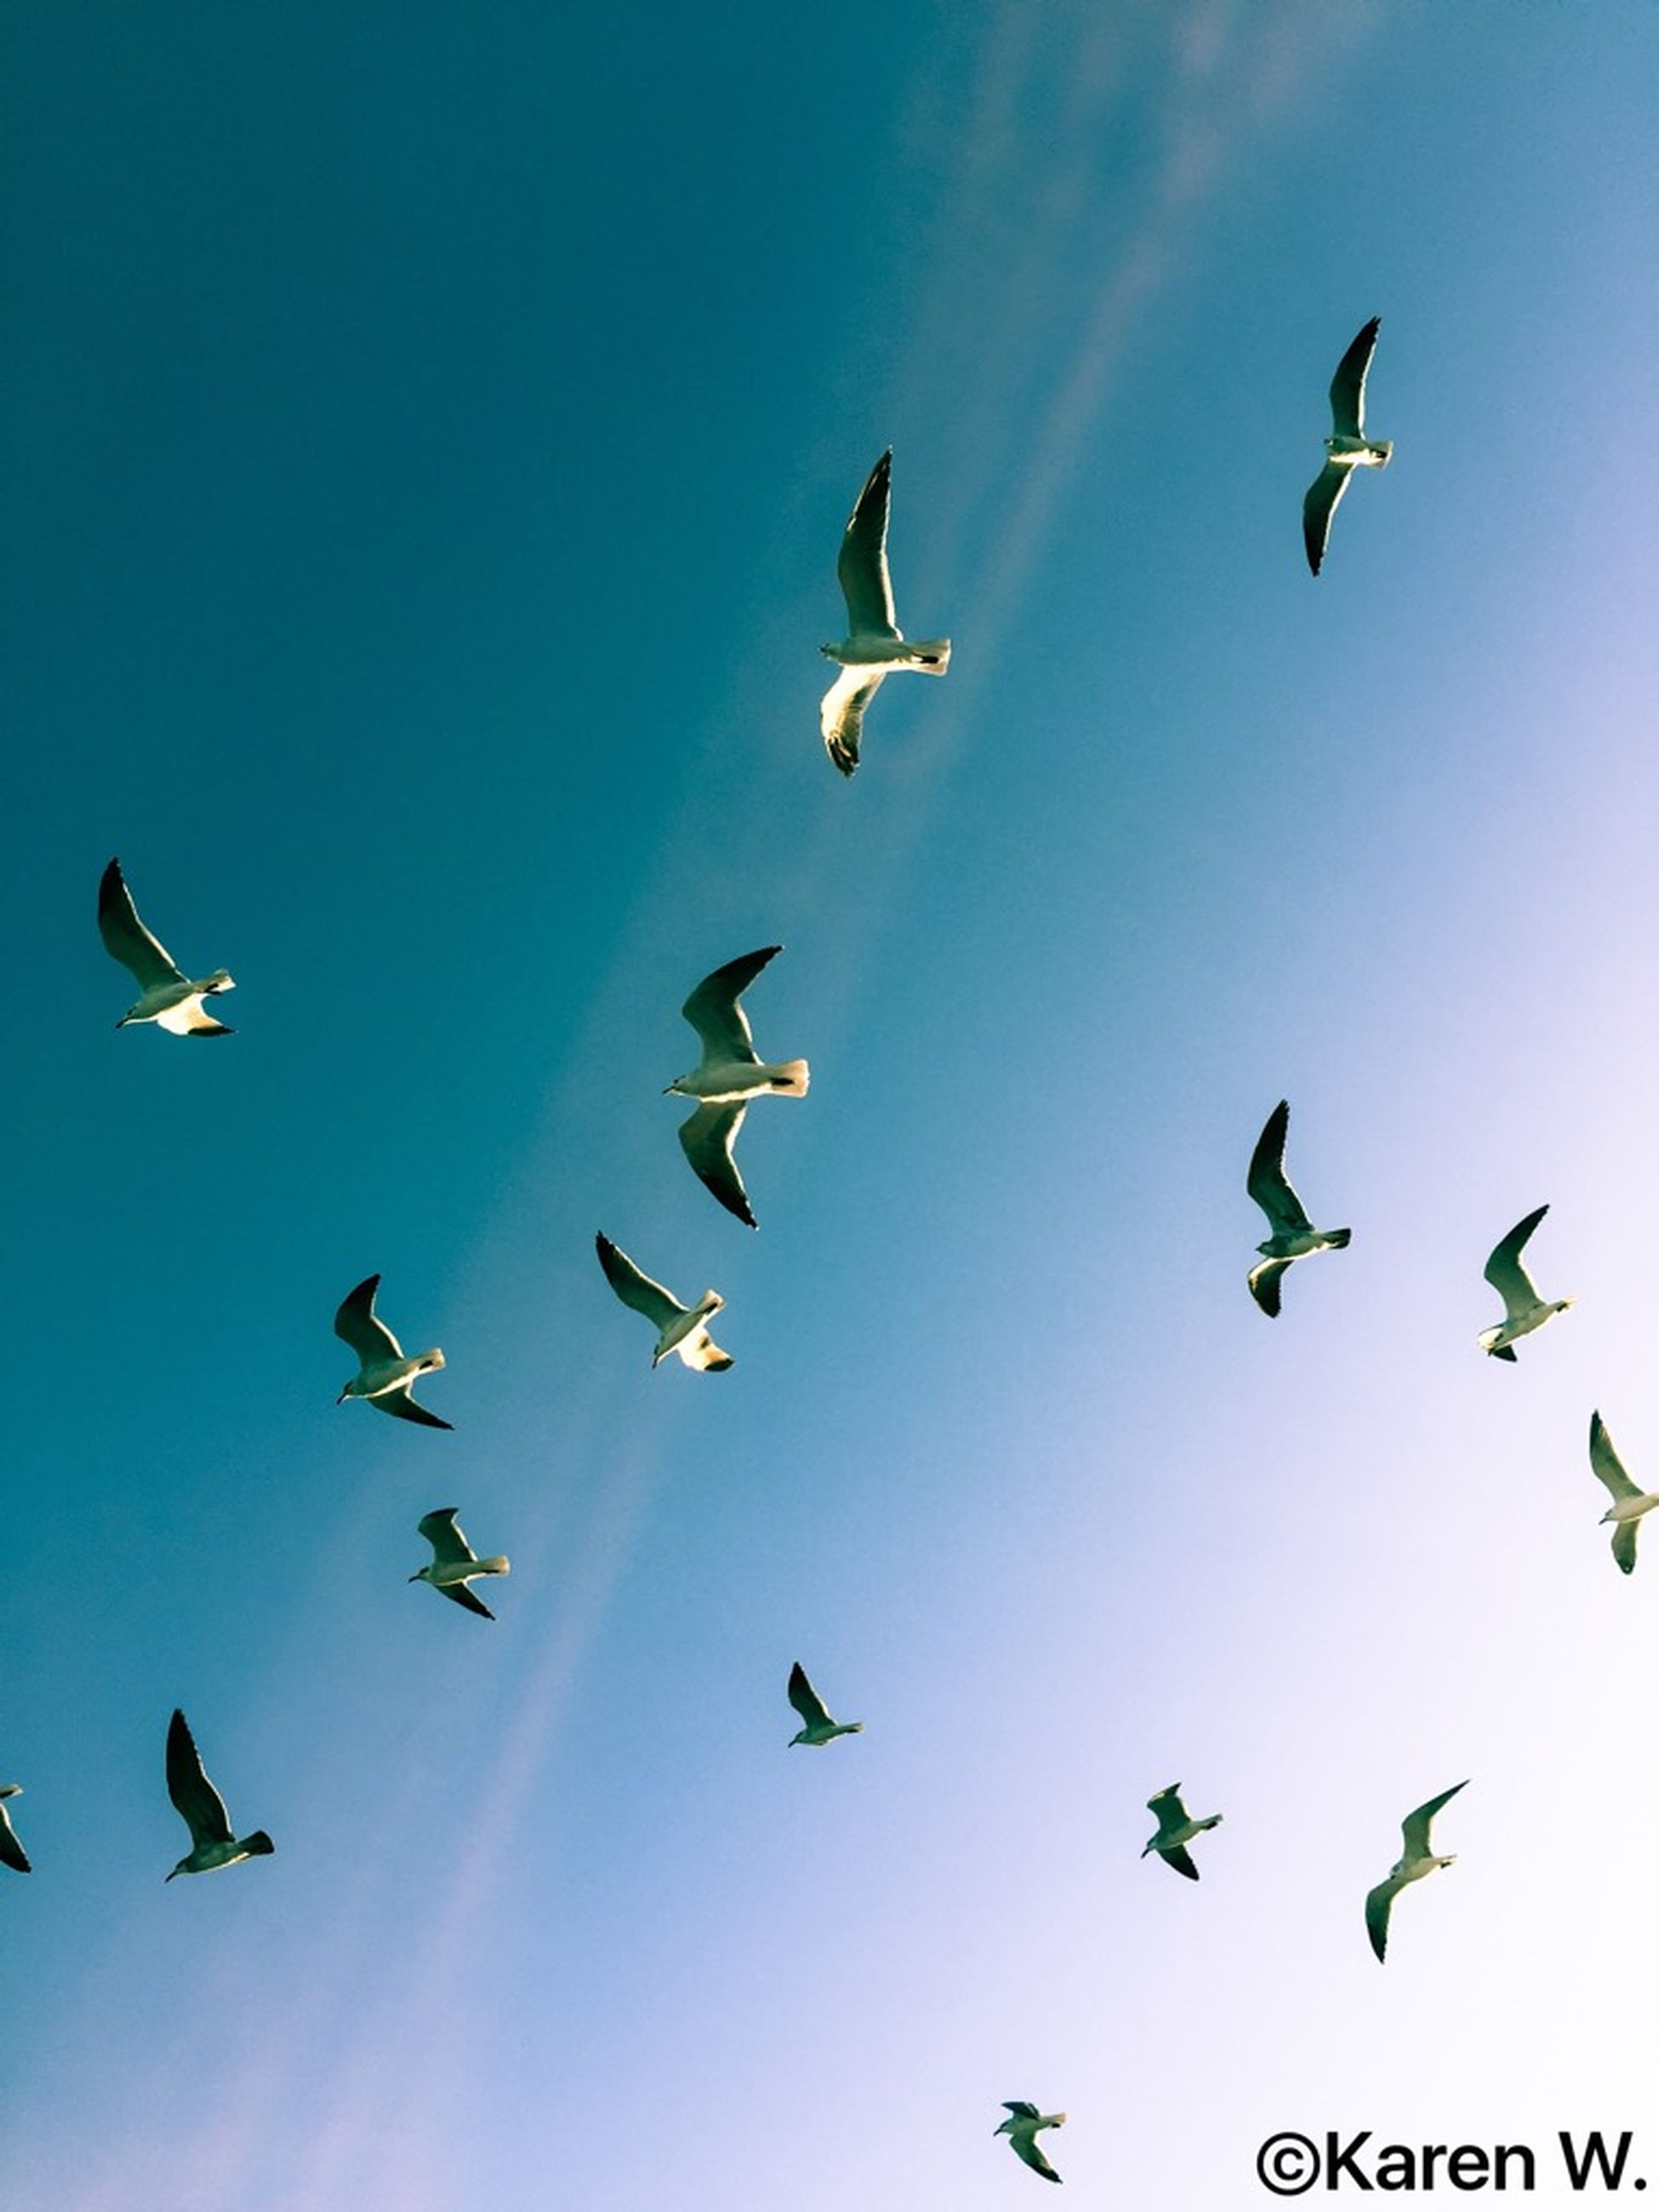 flying, bird, sky, blue, animal wildlife, mid-air, low angle view, motion, animals in the wild, no people, large group of animals, animal themes, spread wings, flock of birds, outdoors, day, nature